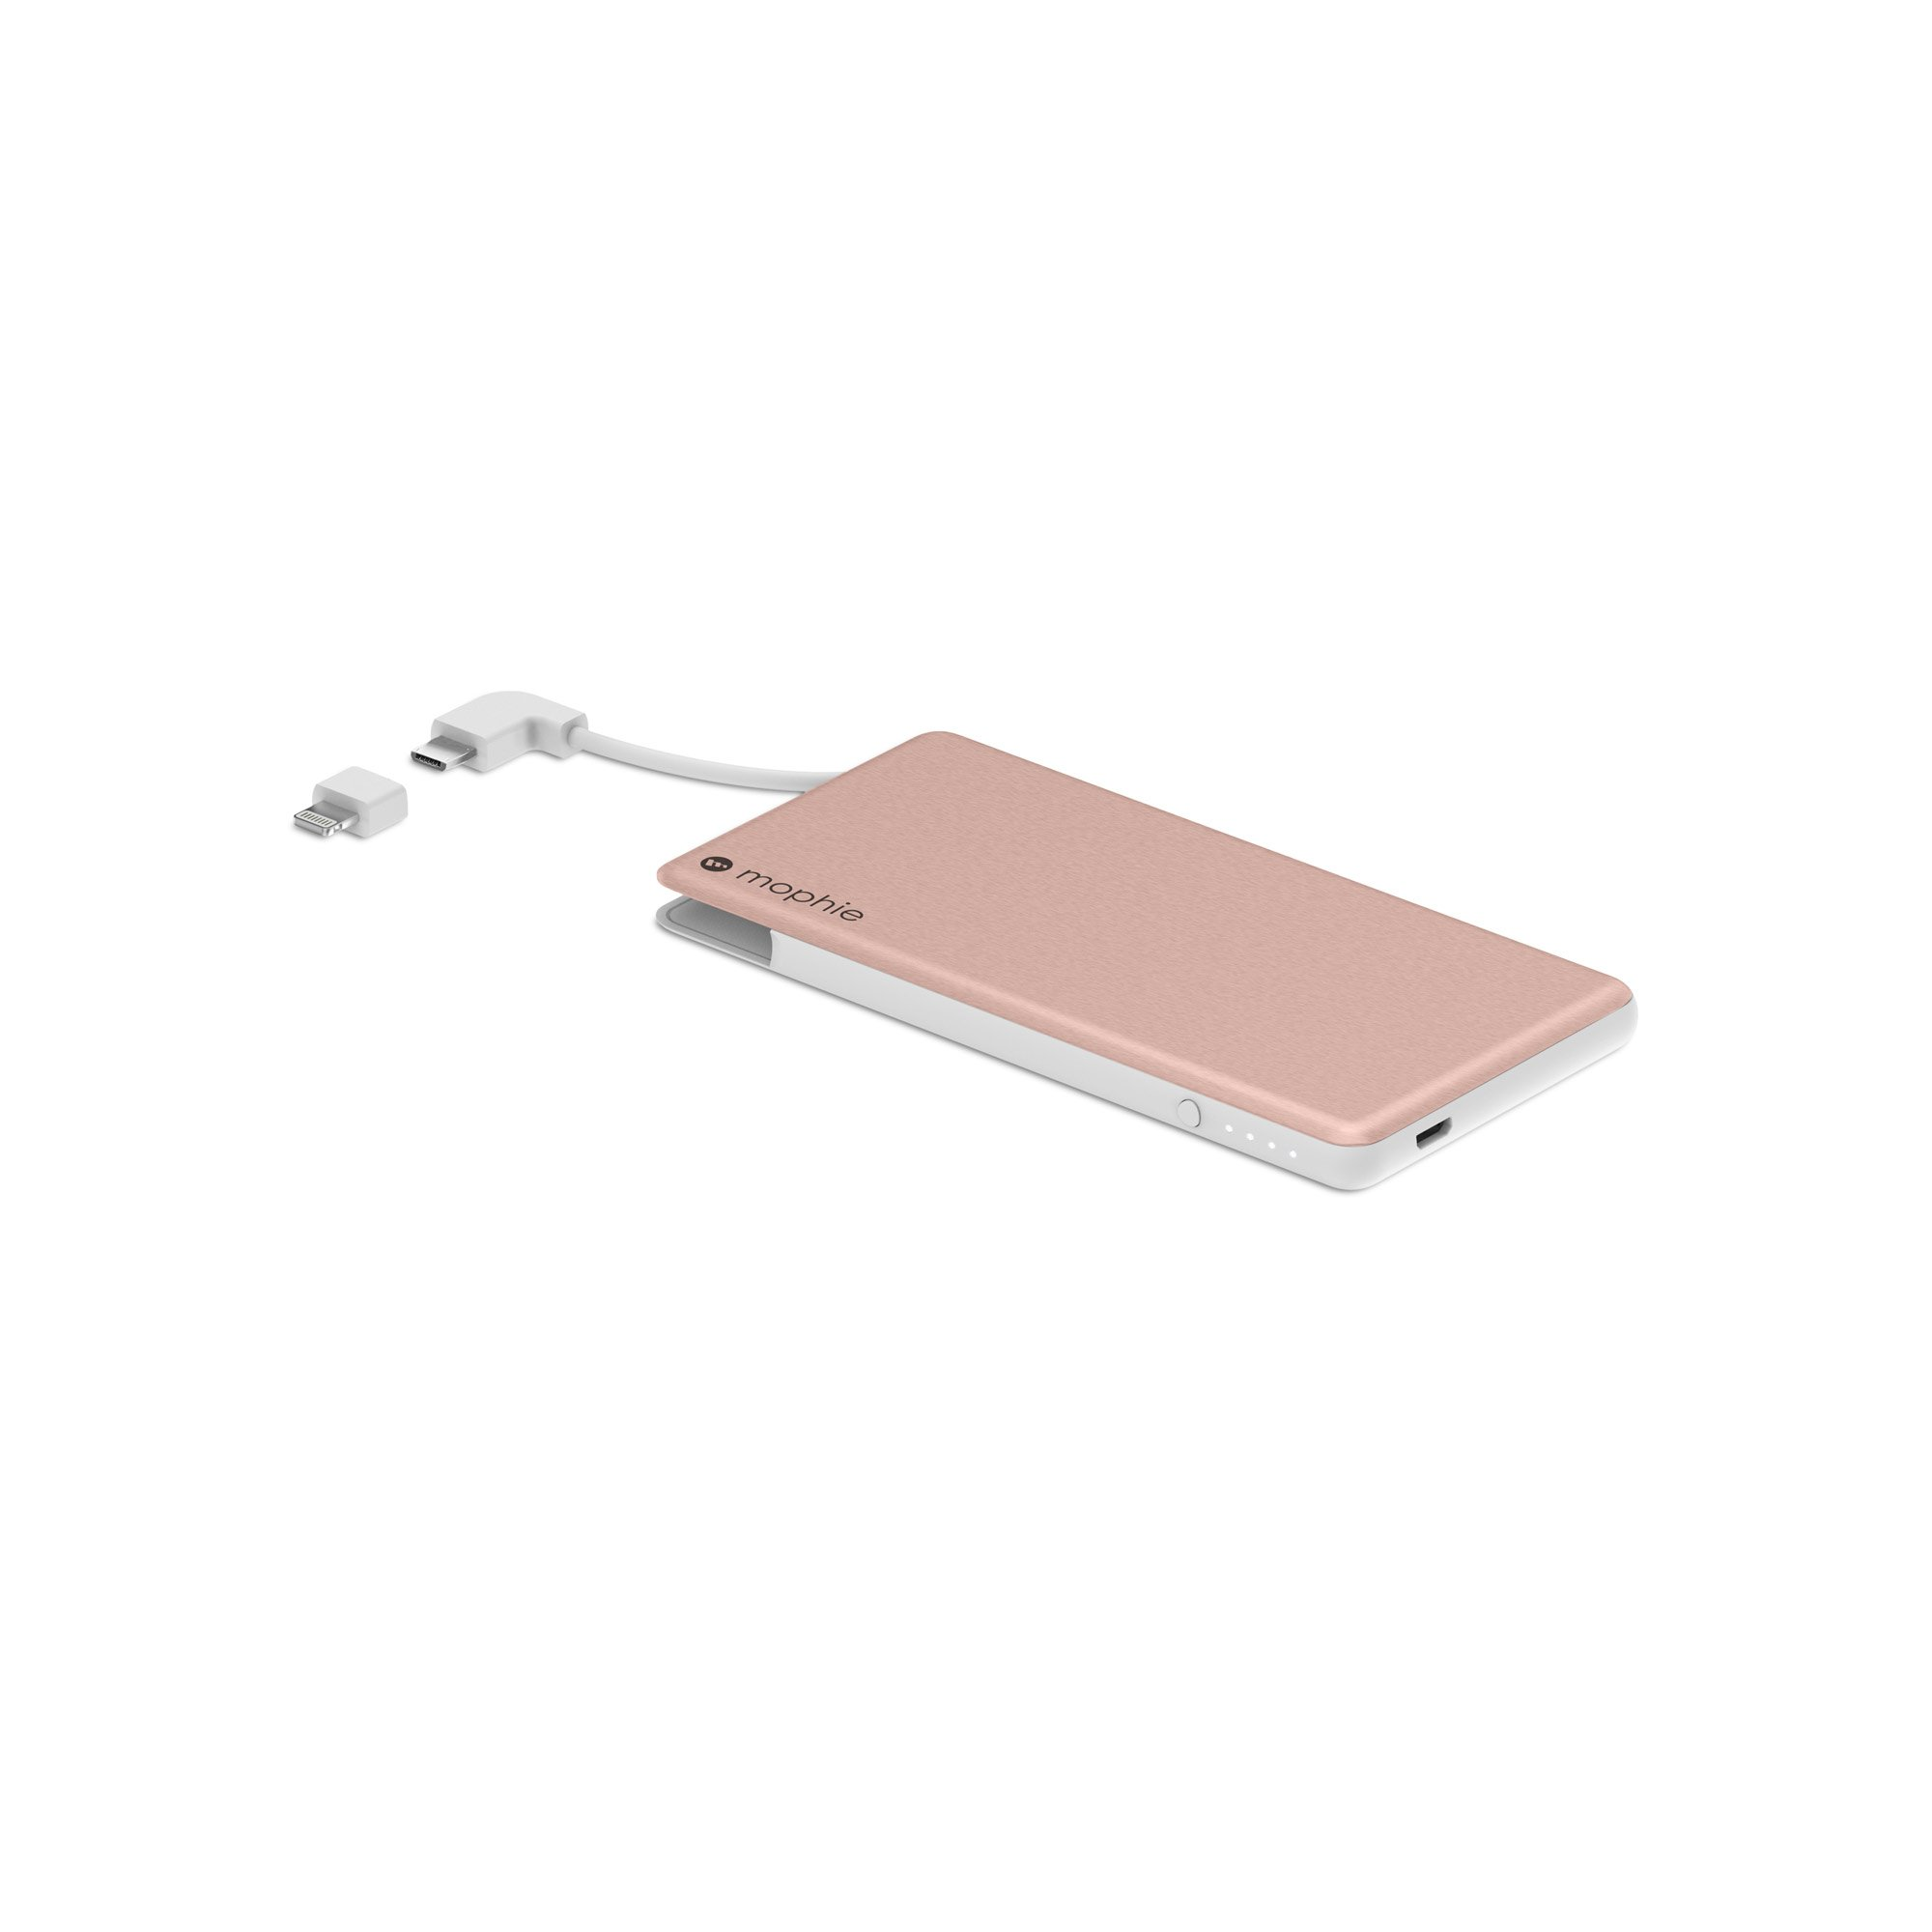 mophie powerstation Plus Mini External Battery with Built in Cables for Smartphones and Tablets (4,000mAh) - Rose Gold